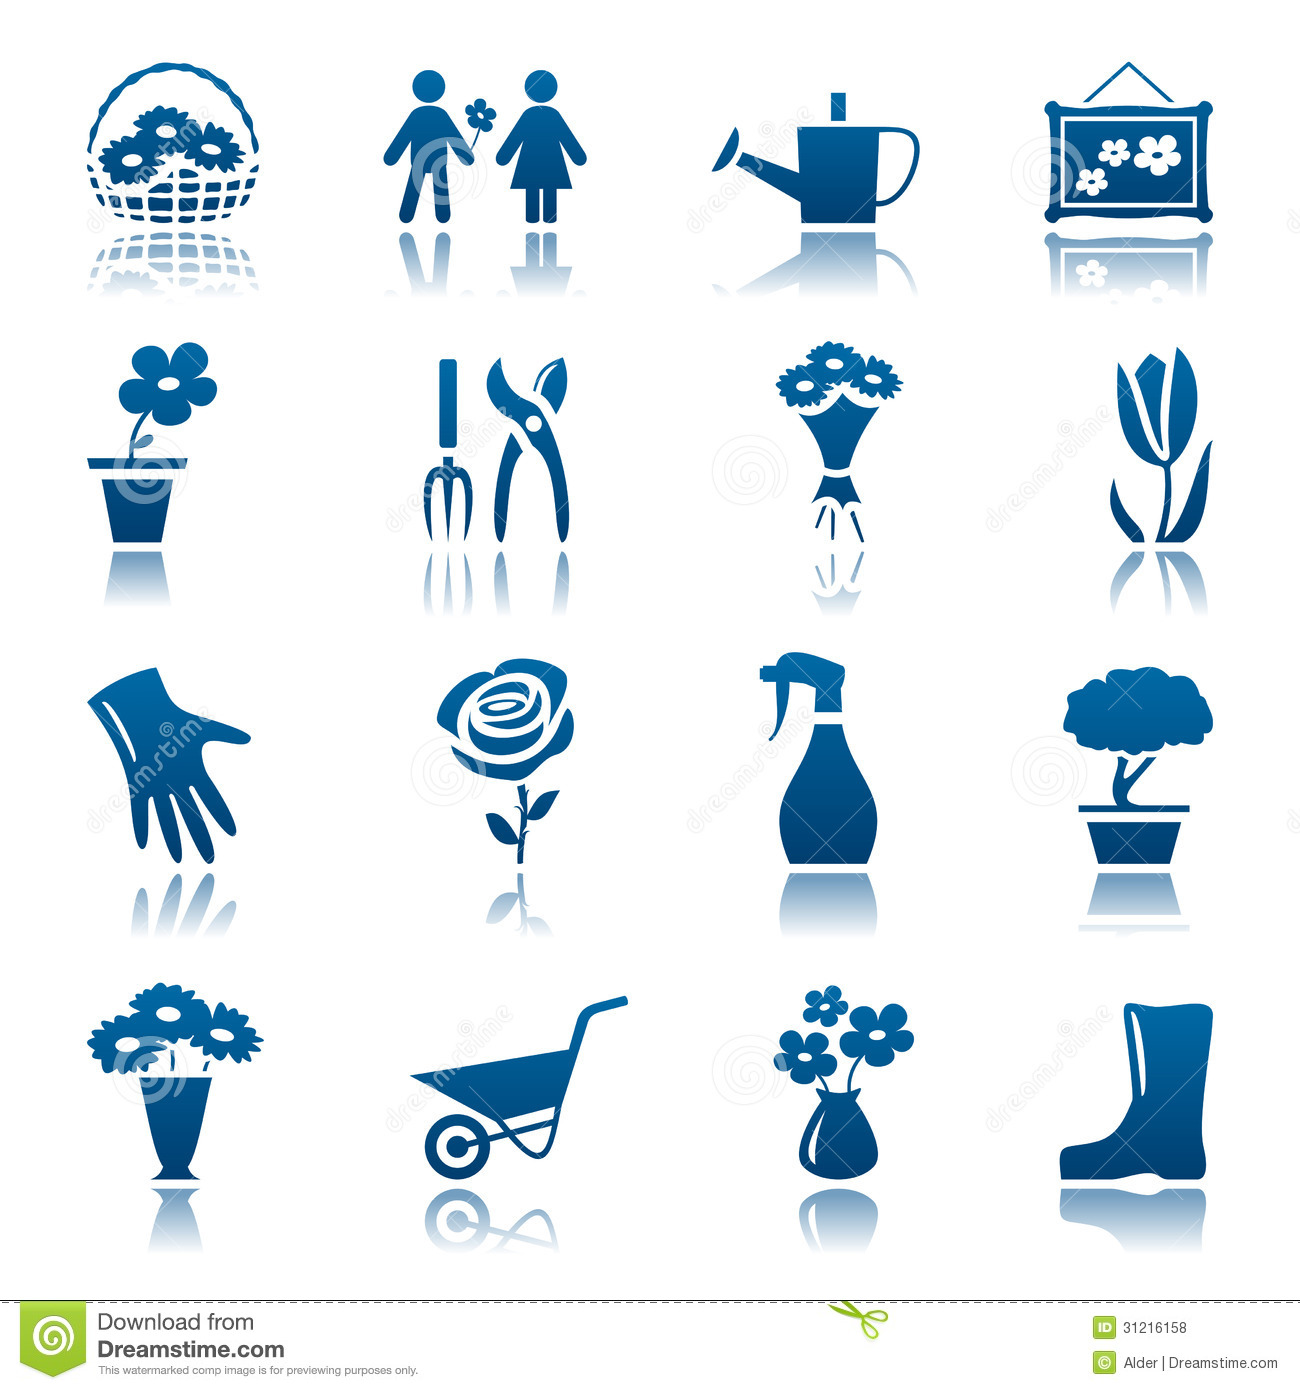 Real Flower Icons Flowers and gardening icon setReal Flower Icons